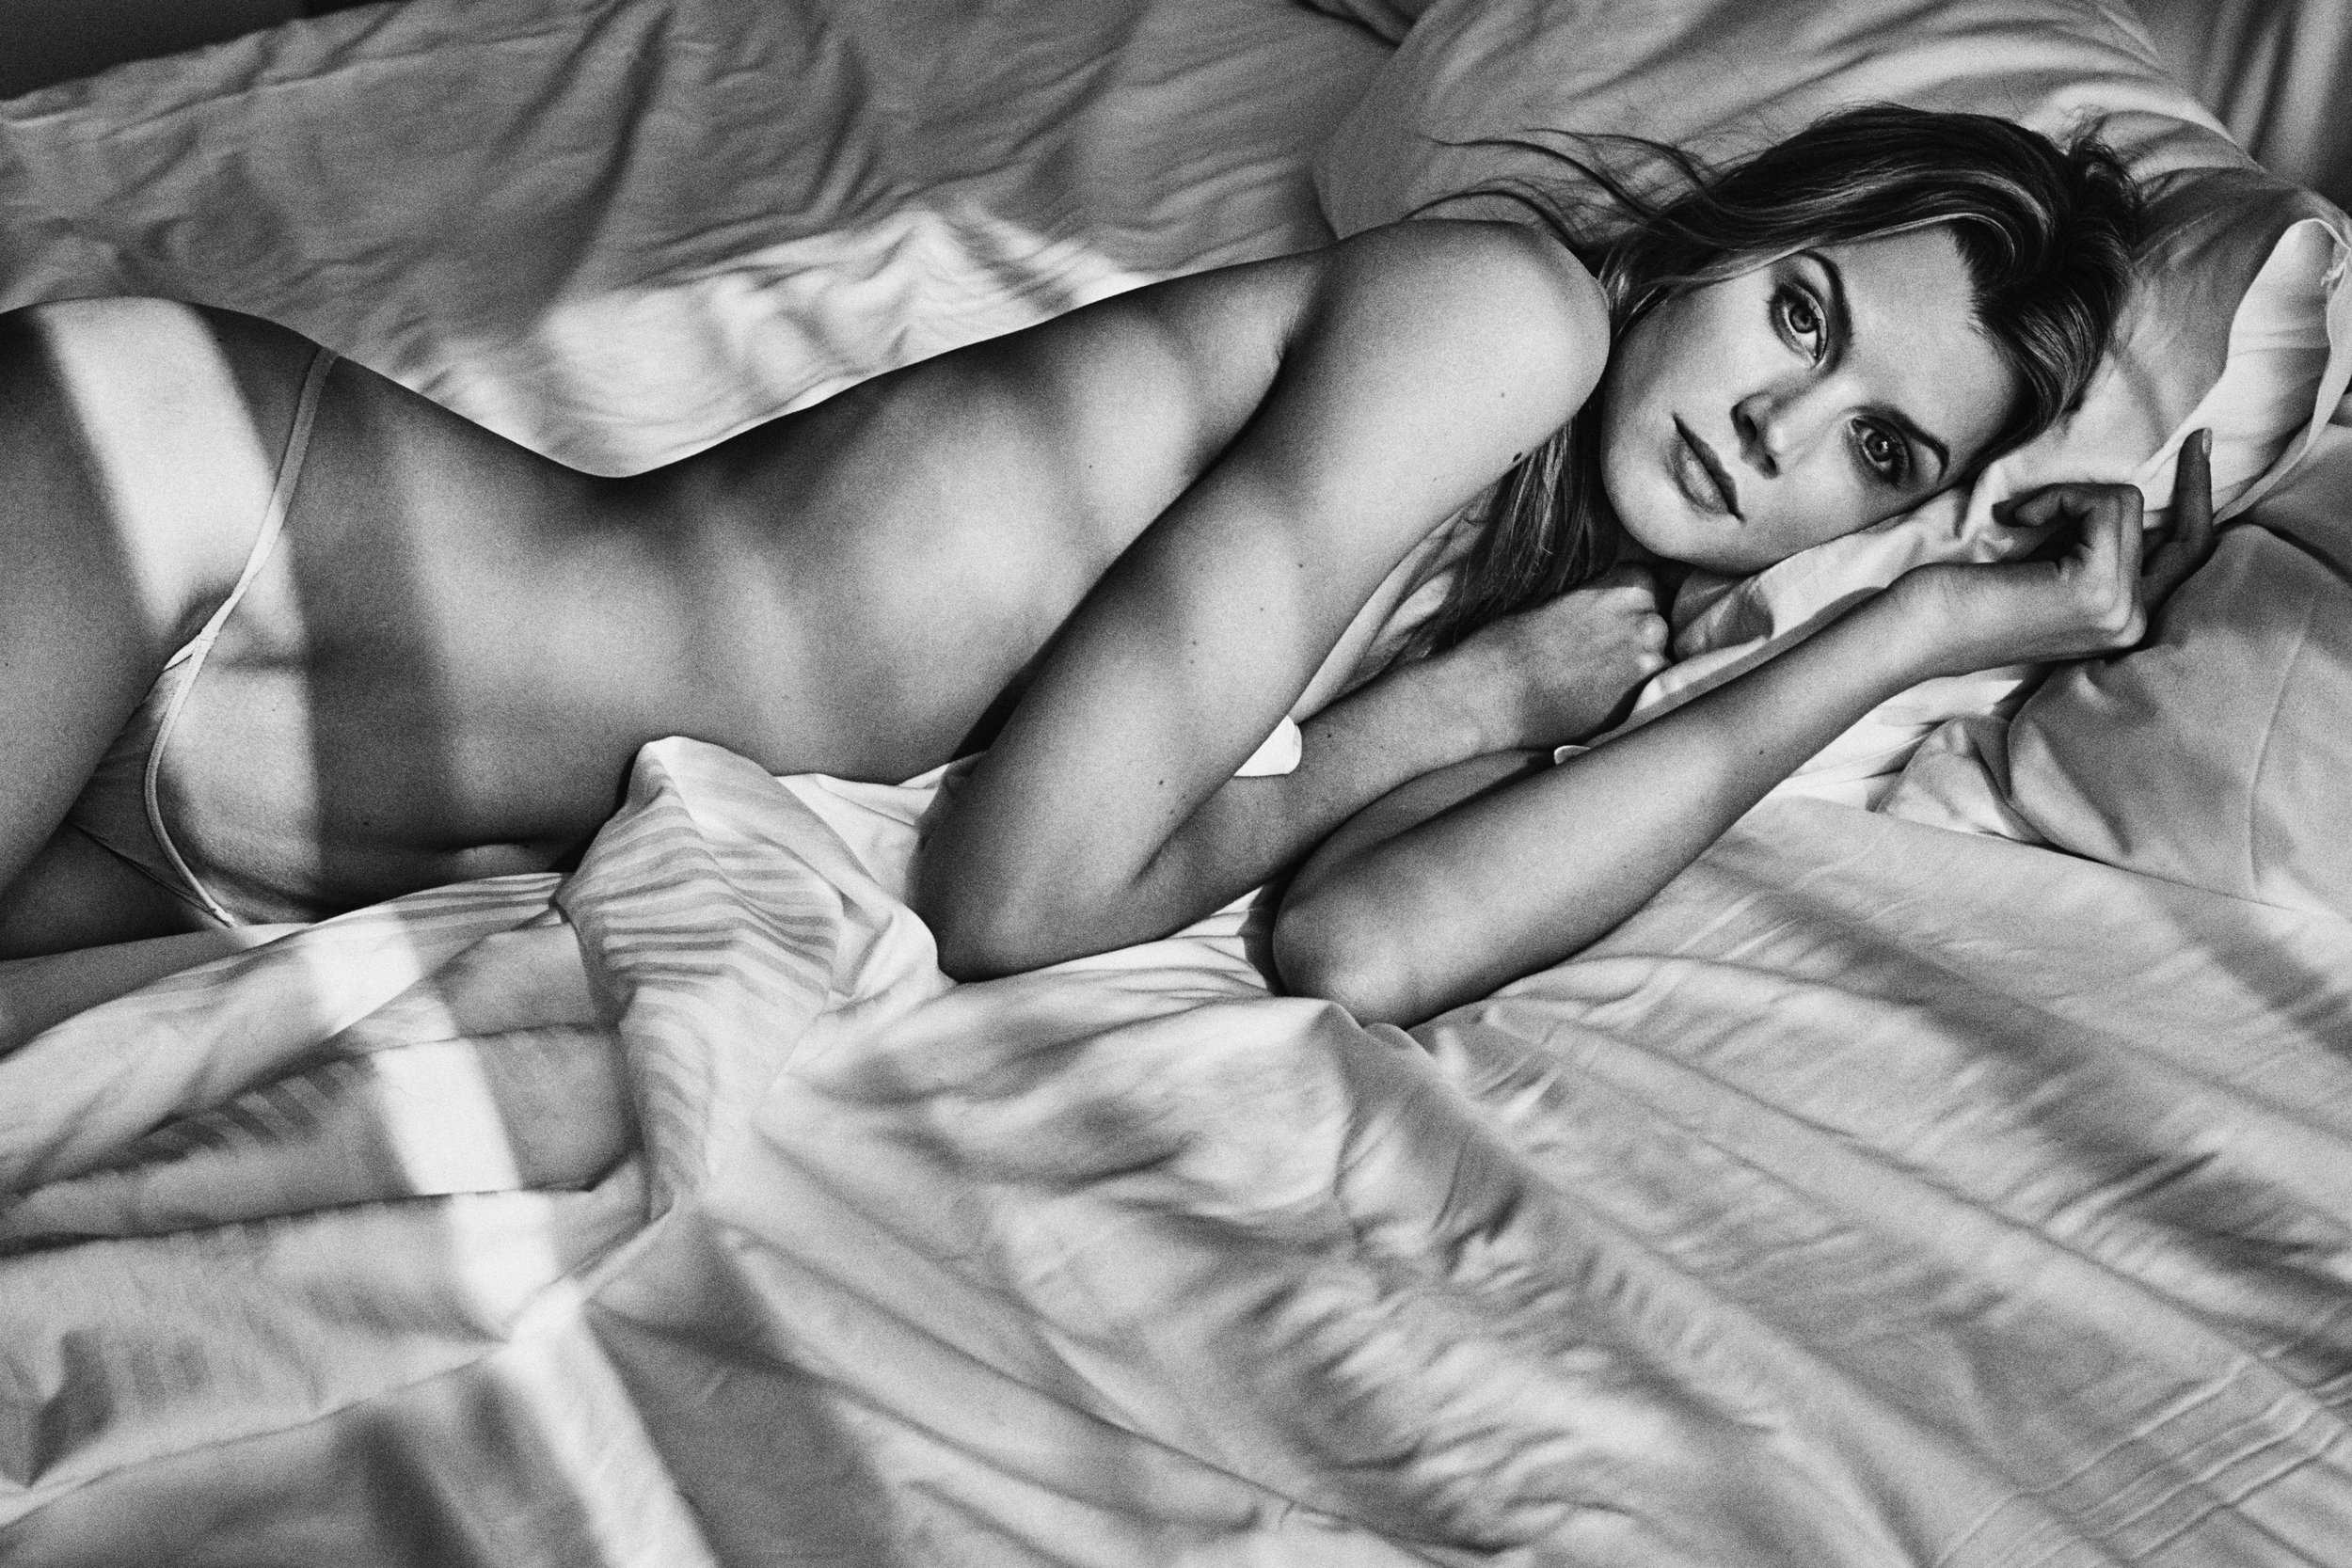 Jayne Moore with WIll Vendramini hotel series nude morning wake up morning light bed head